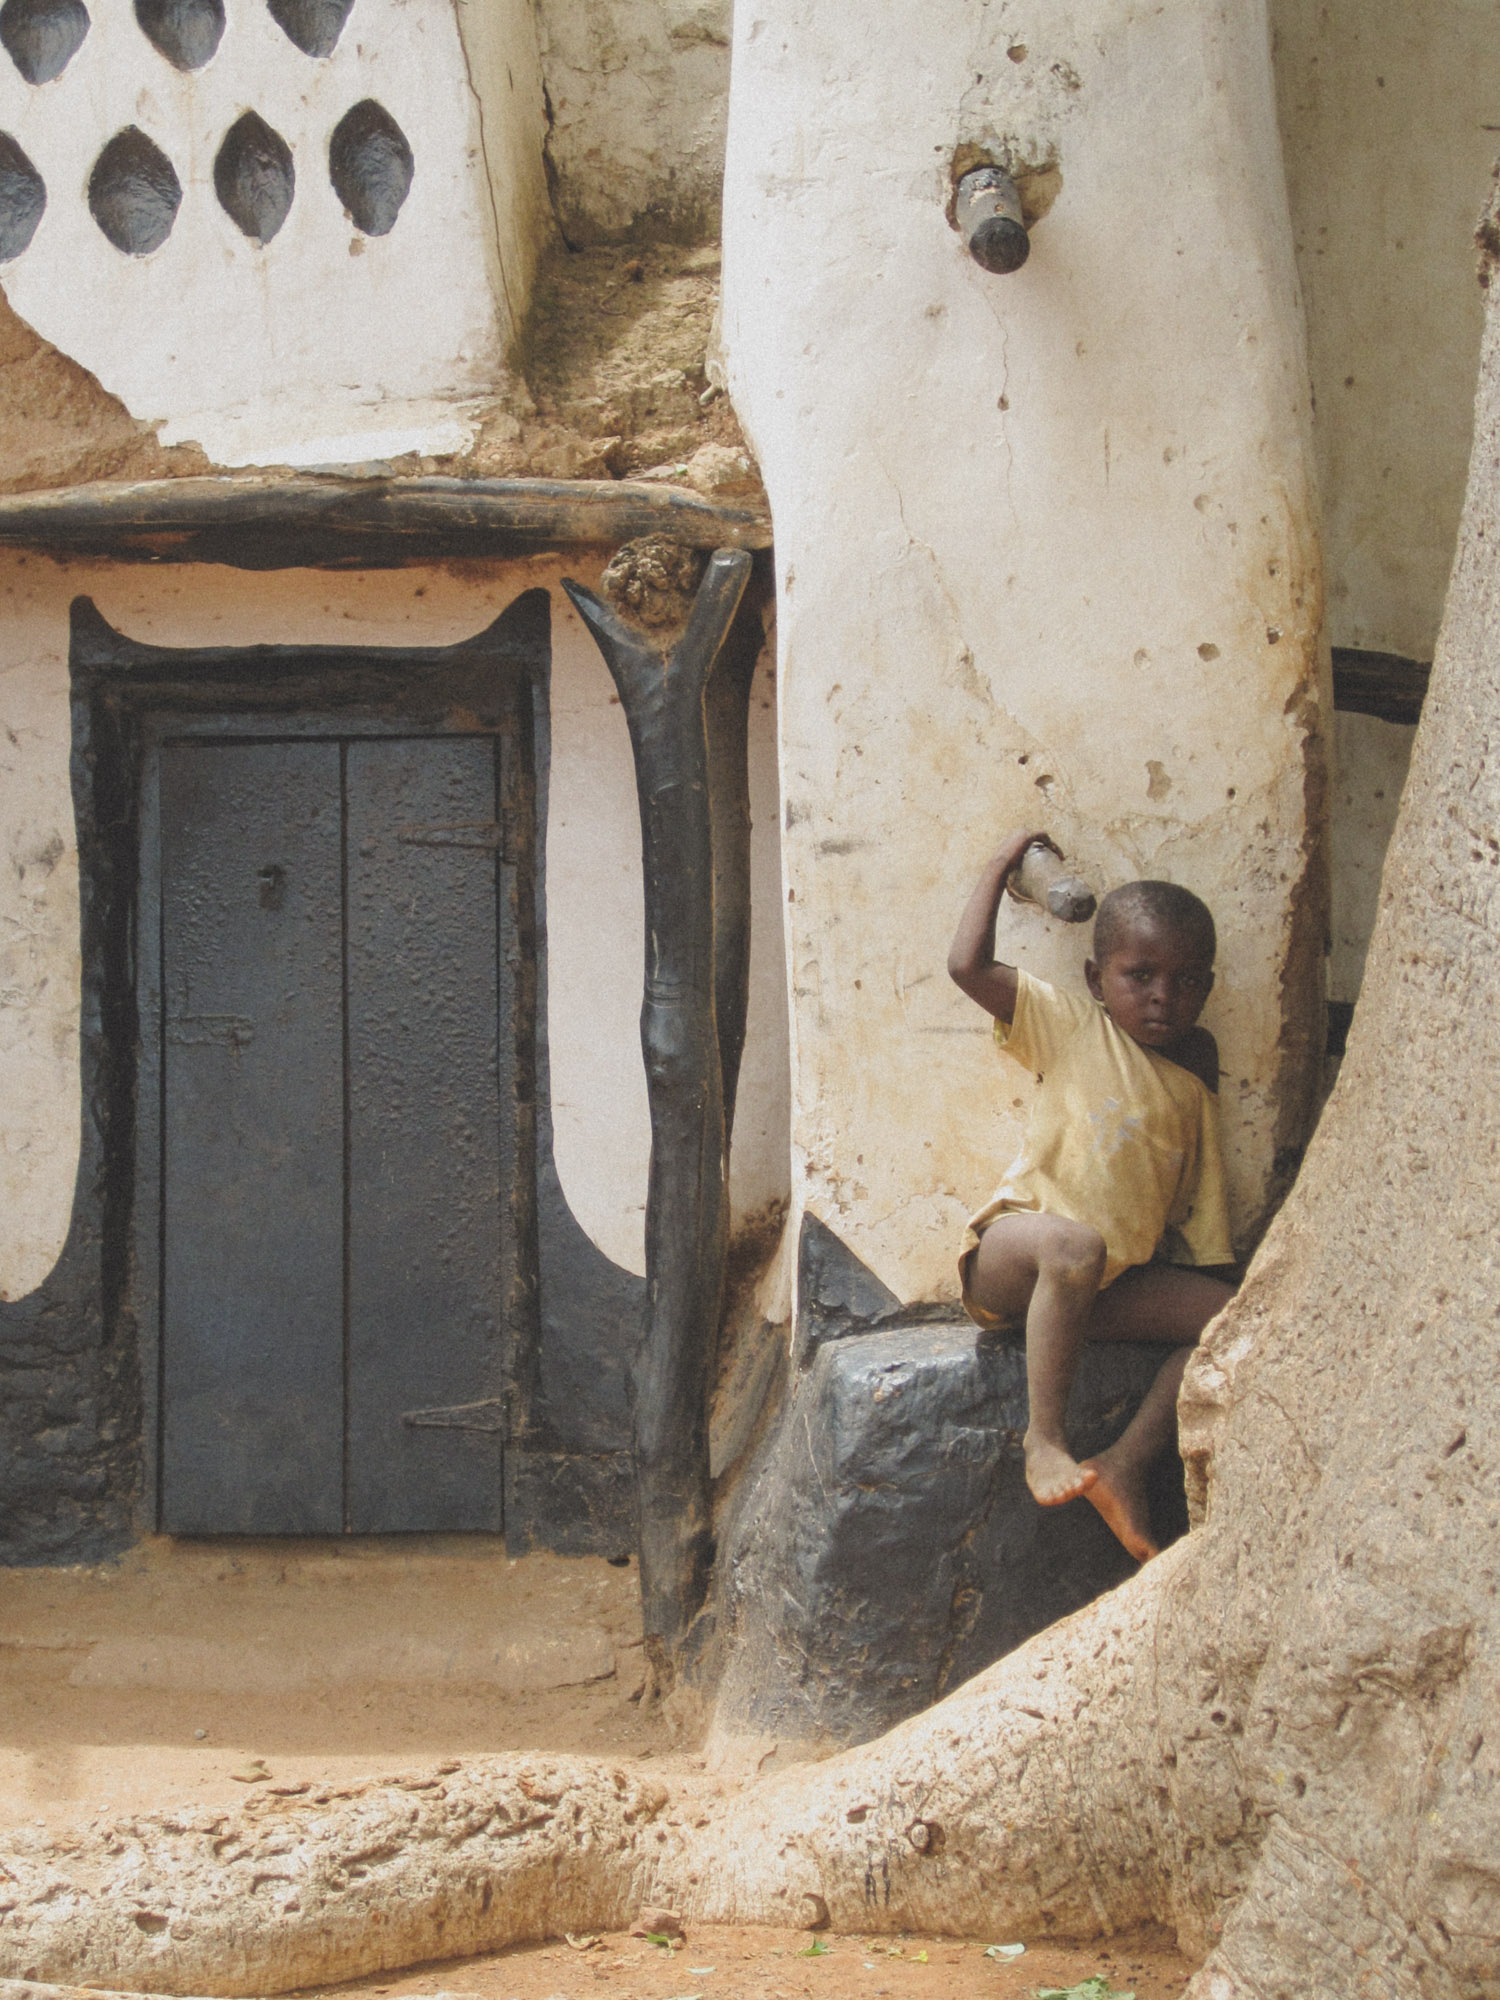 A child outside Larabanga mosque, one of the oldest mosques in Western Africa | Photo by Caroline Taft,  The Brazen Gourmand